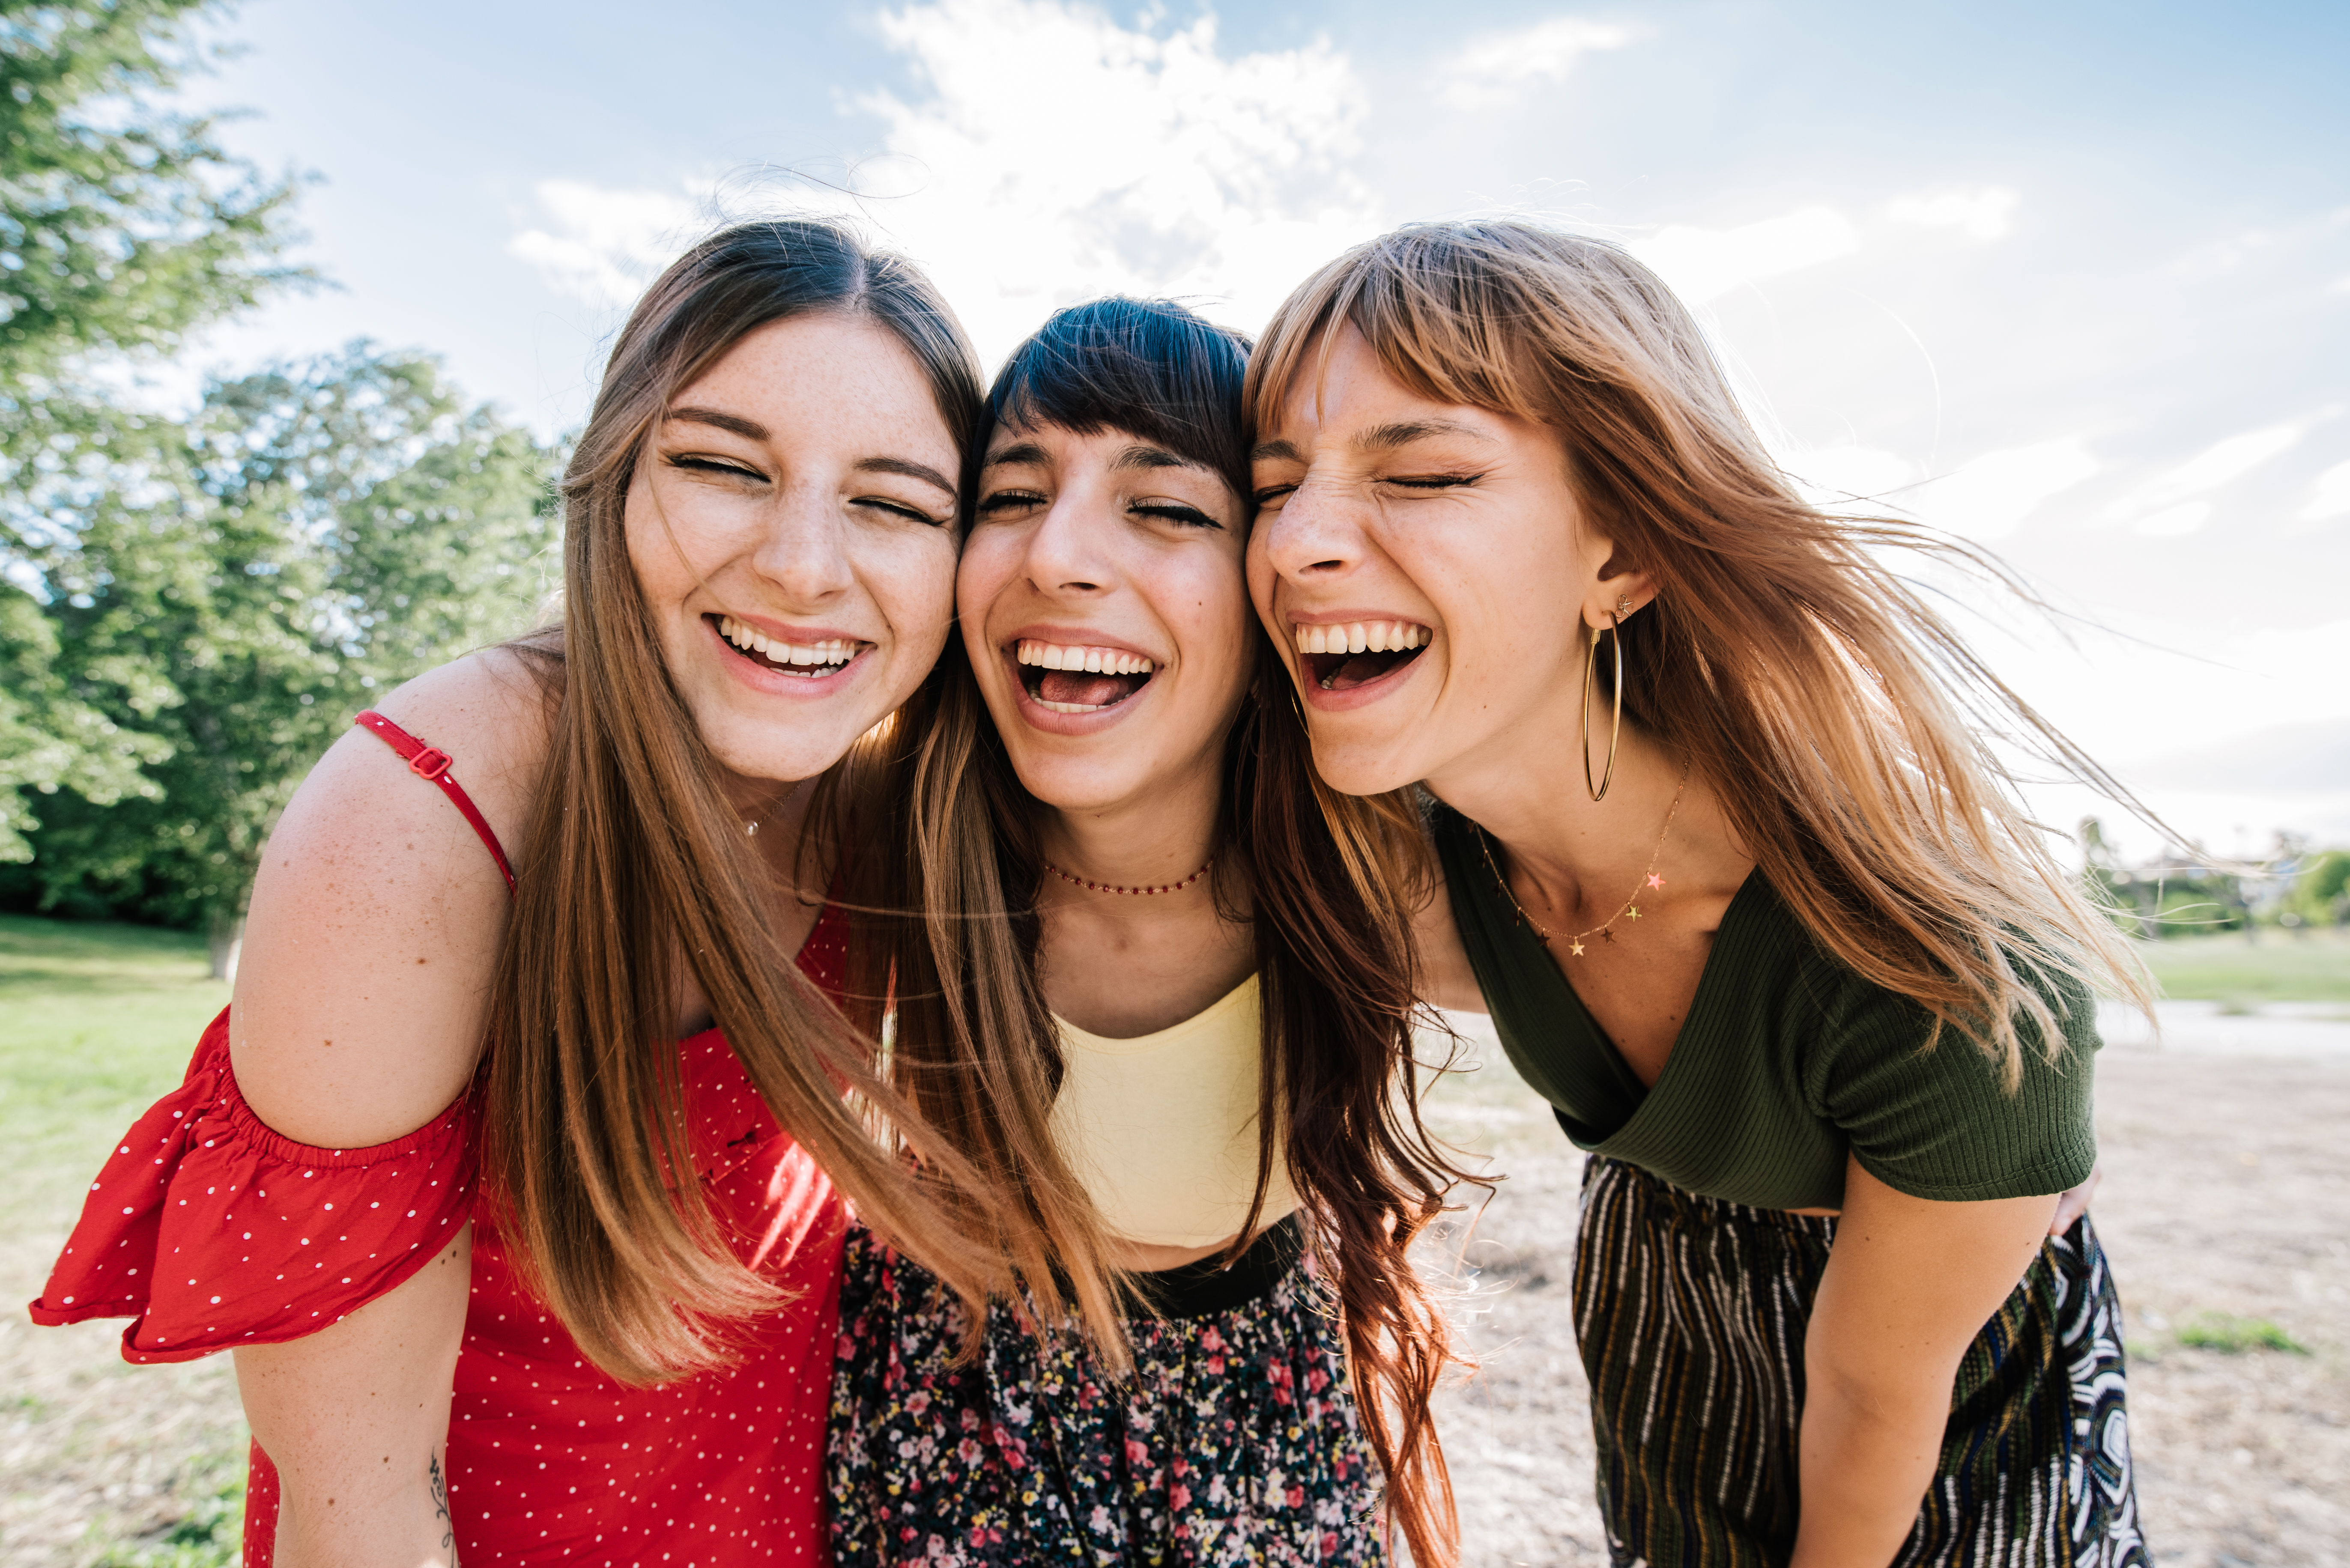 portrait-of-three-young-female-friends-laughing-together.jpg